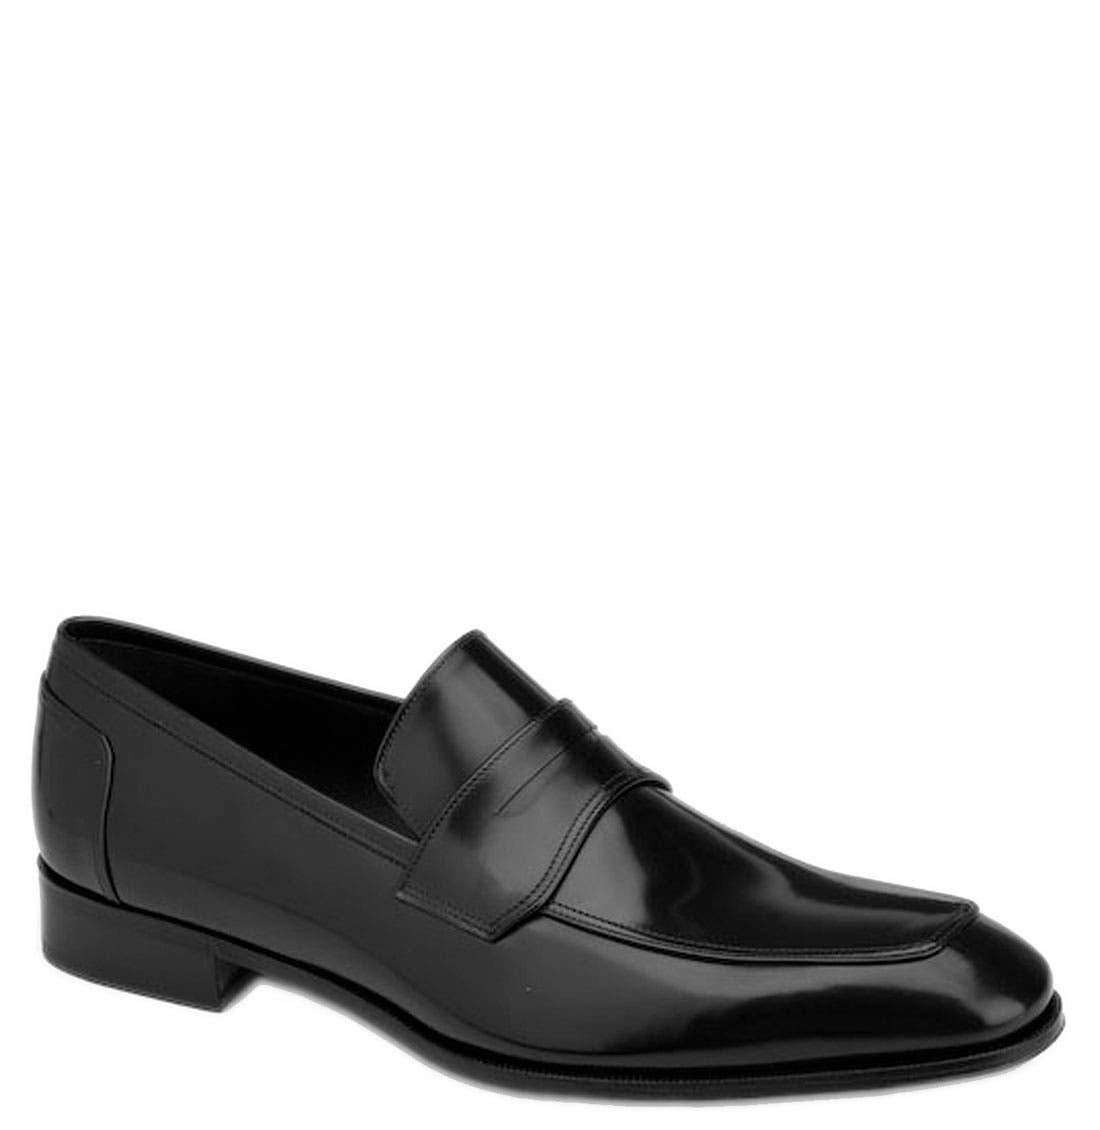 'Lionel' Loafer,                             Main thumbnail 1, color,                             Black Calf